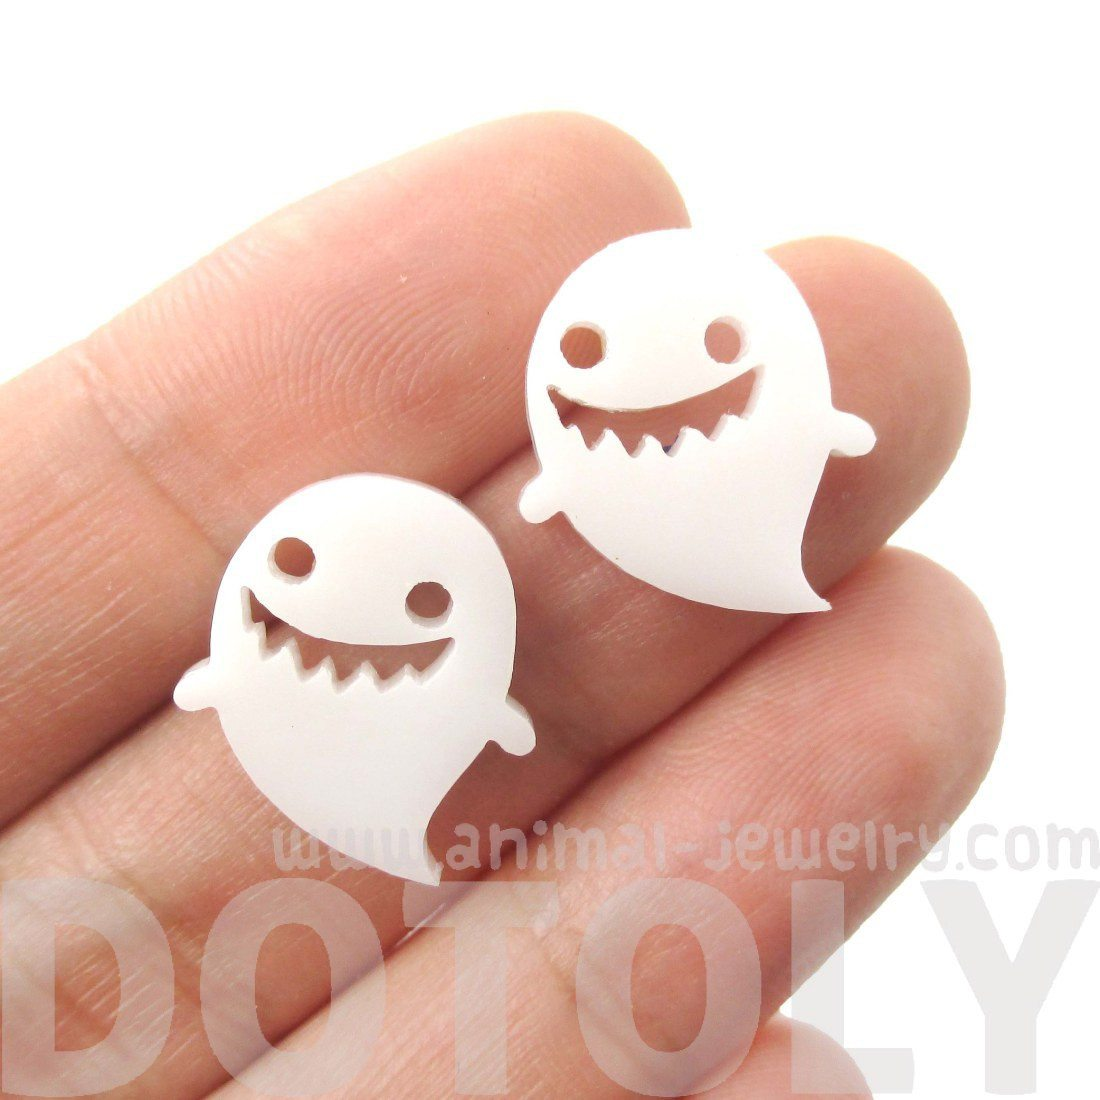 Adorable Laser Cut White Acrylic Ghost Shaped Statement Stud Earrings